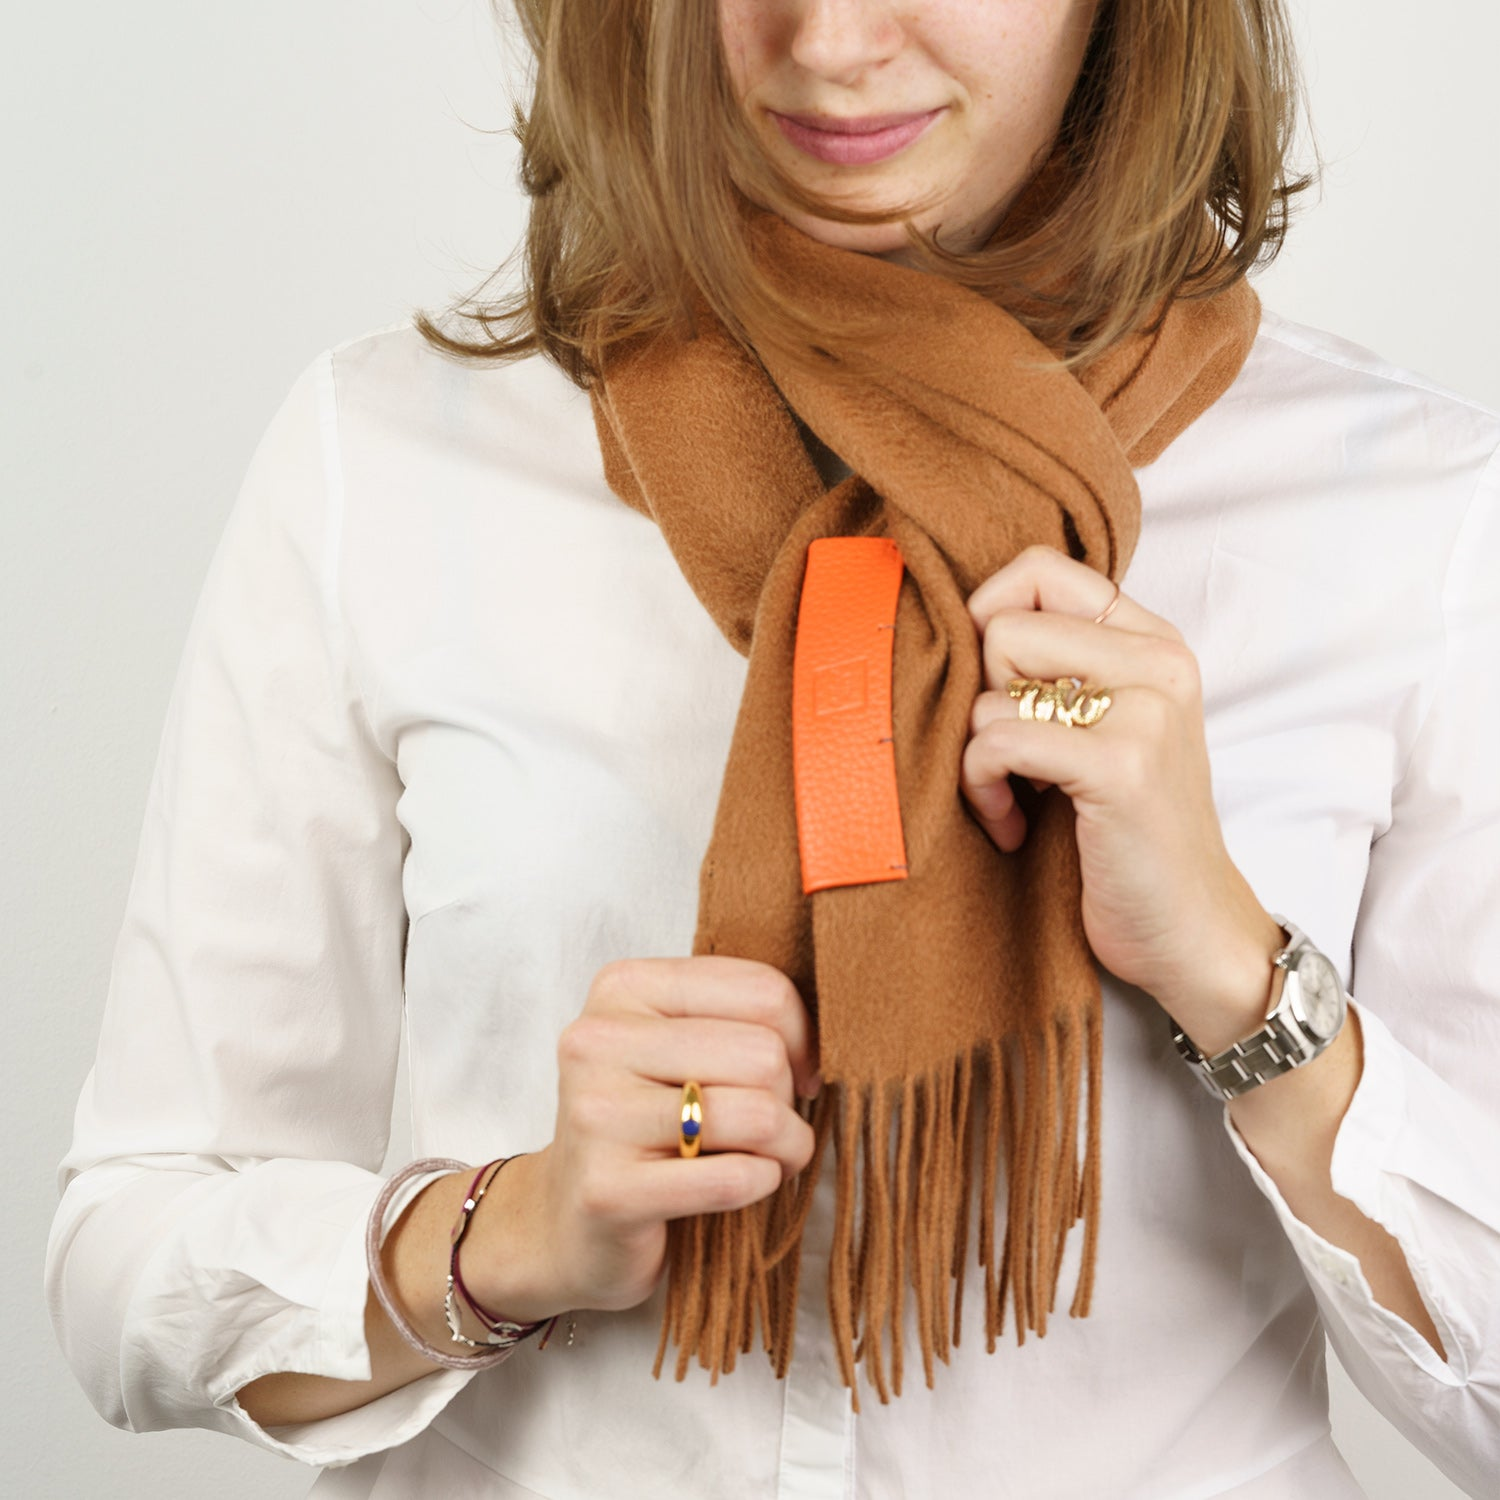 The Biellese Cashmere scarf with Calfskin leather. 100% Cashmere & R. Horn´s Calfskin Leather 30 x 180 cm. Made in collaboration with R. Horn Vienna. Pictured: Beige Cashmere with Orange leather label